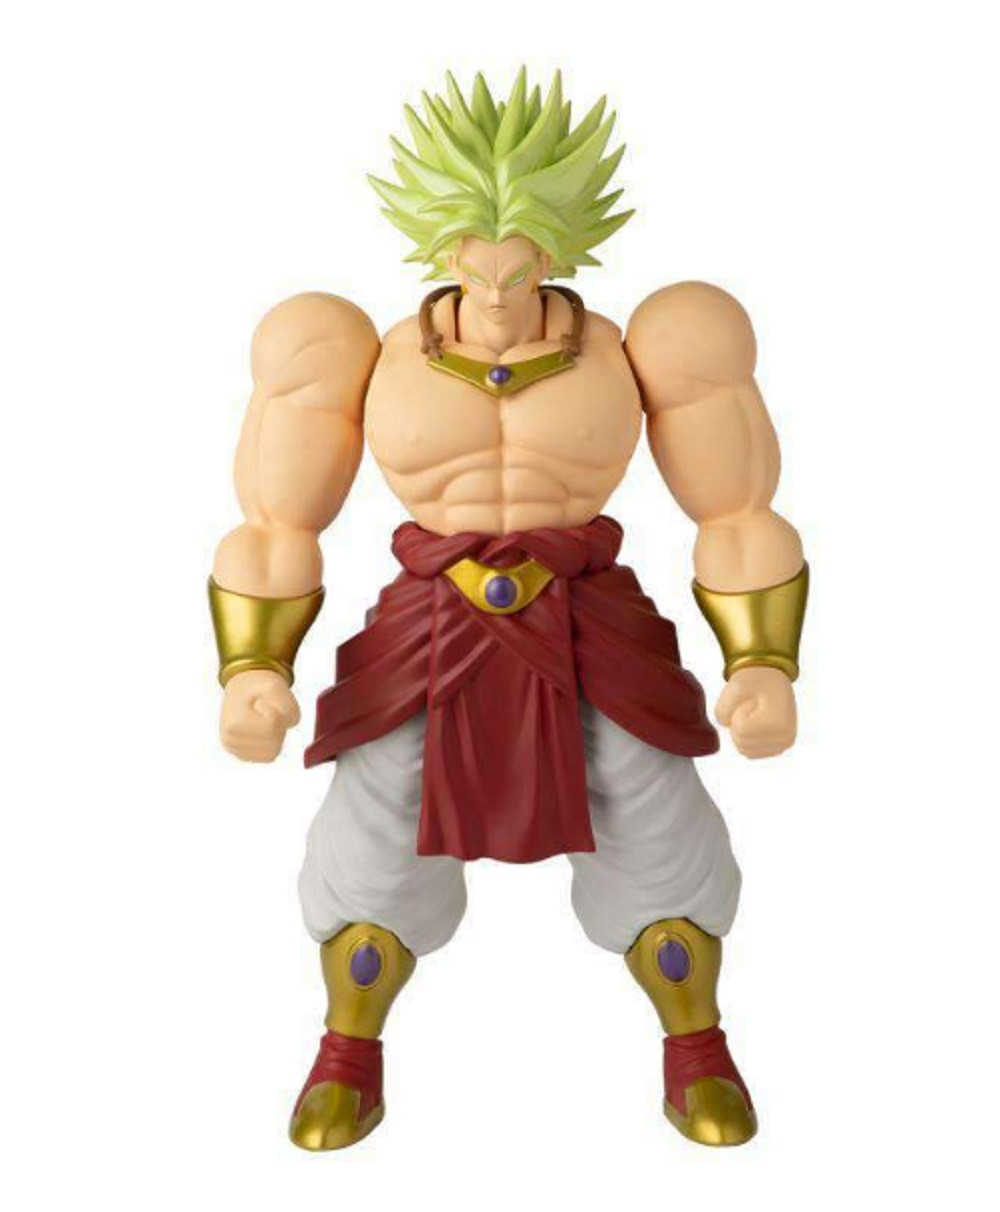 Action Figure - Dragon Ball Super - Limit Breaker - Classic Broly - Wave 1 - 13 Inch